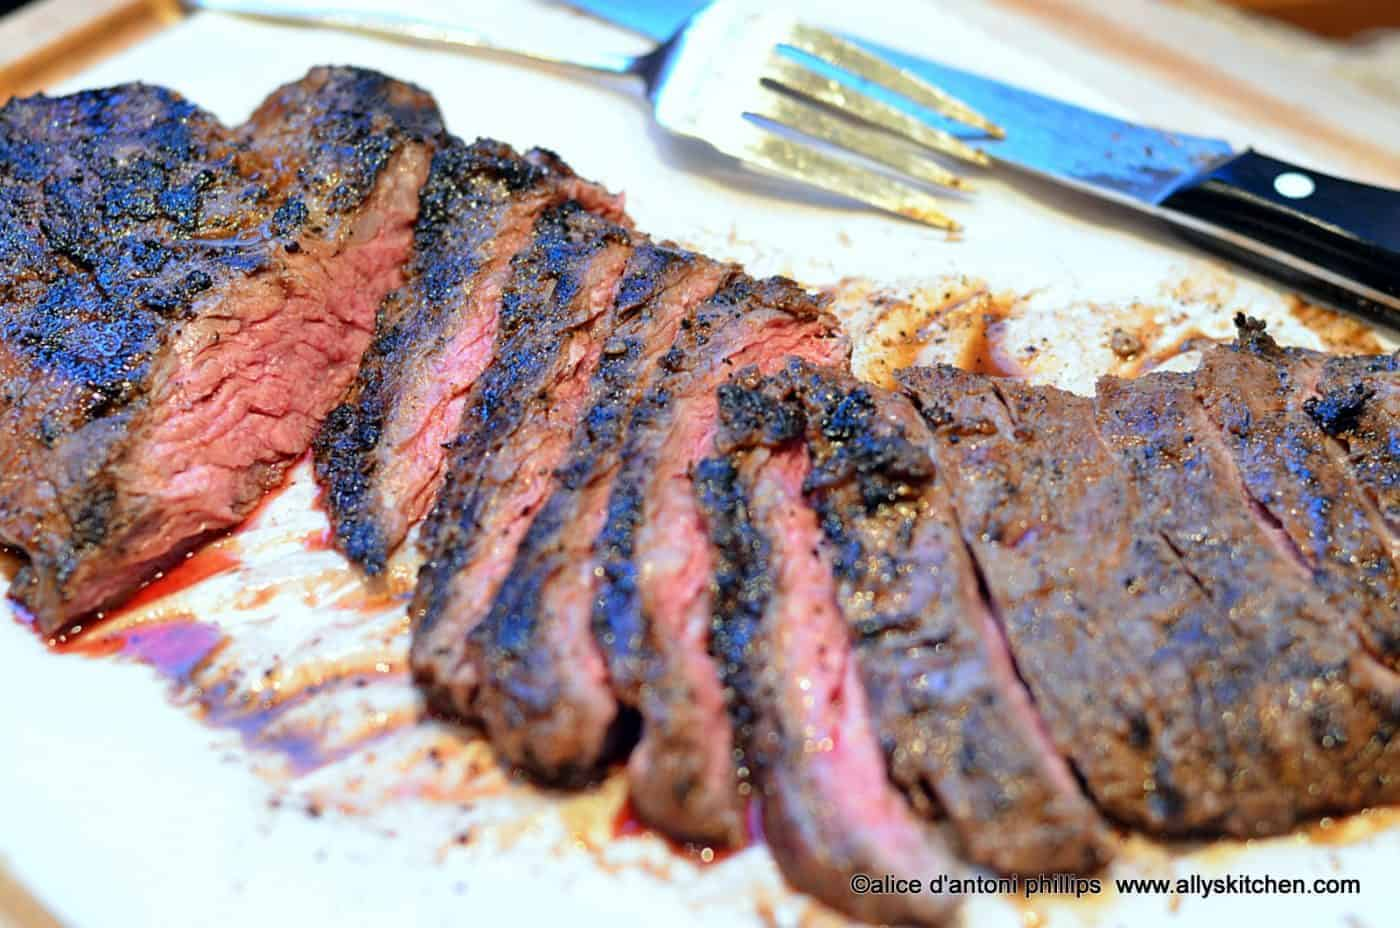 ... spicy skirt steak skirt steak long flat and it s usually folded